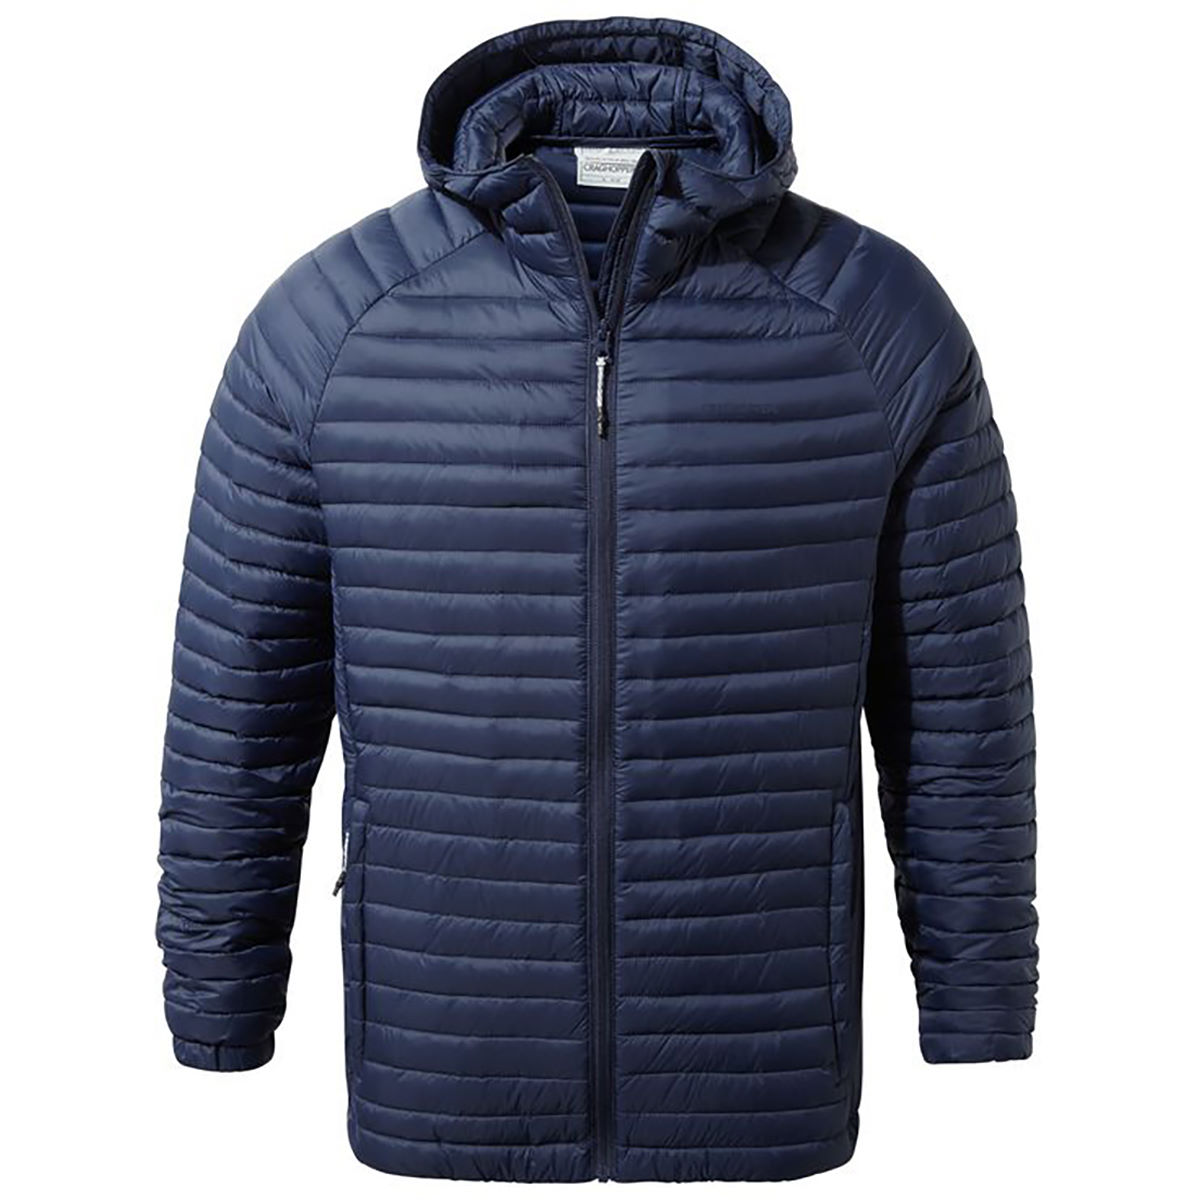 Craghoppers Venta Lite Hooded Jacket - Extra Large Blue Navy  Jackets